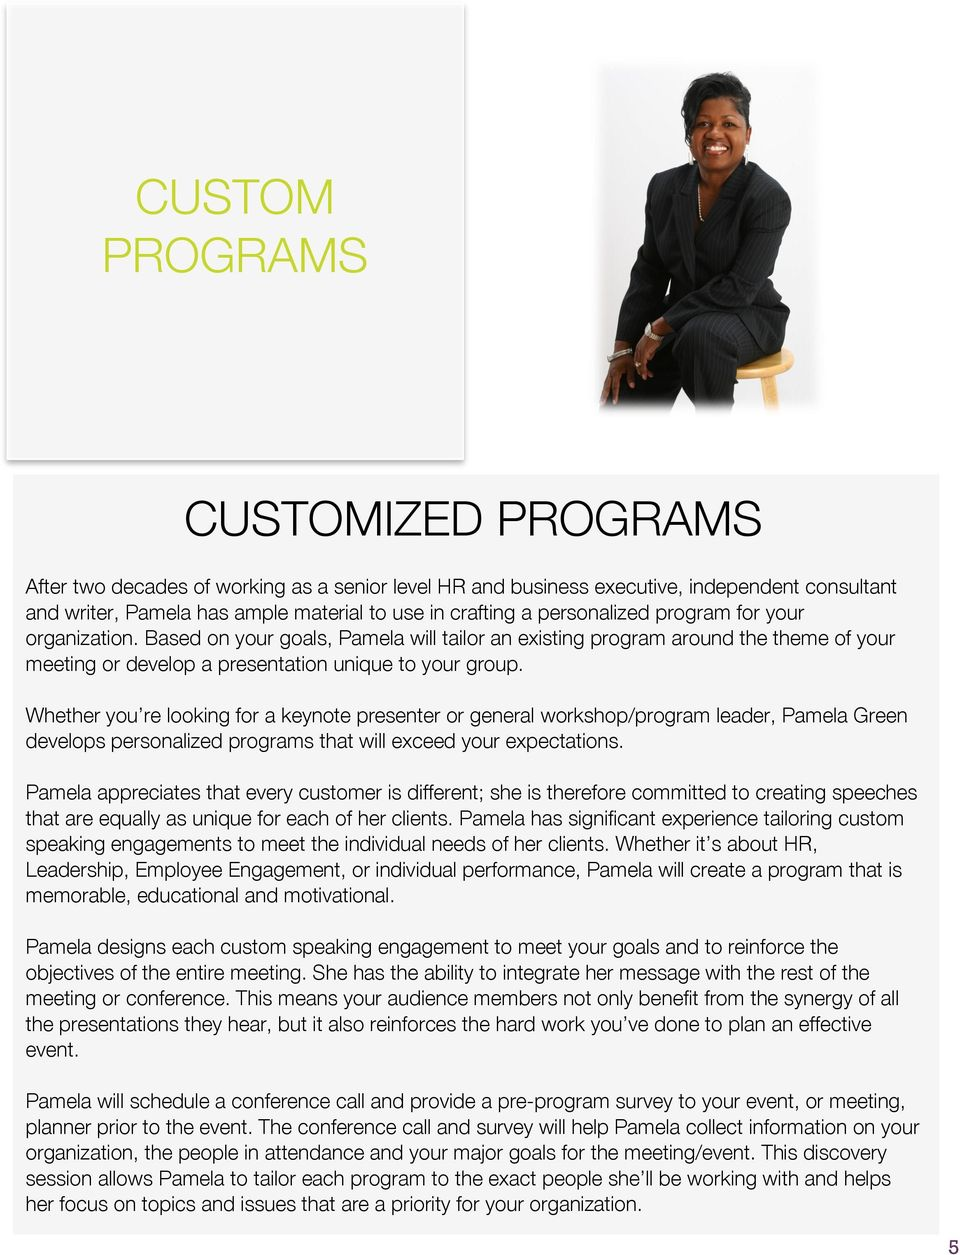 Whether you re looking for a keynote presenter or general workshop/program leader, Pamela Green develops personalized programs that will exceed your expectations.